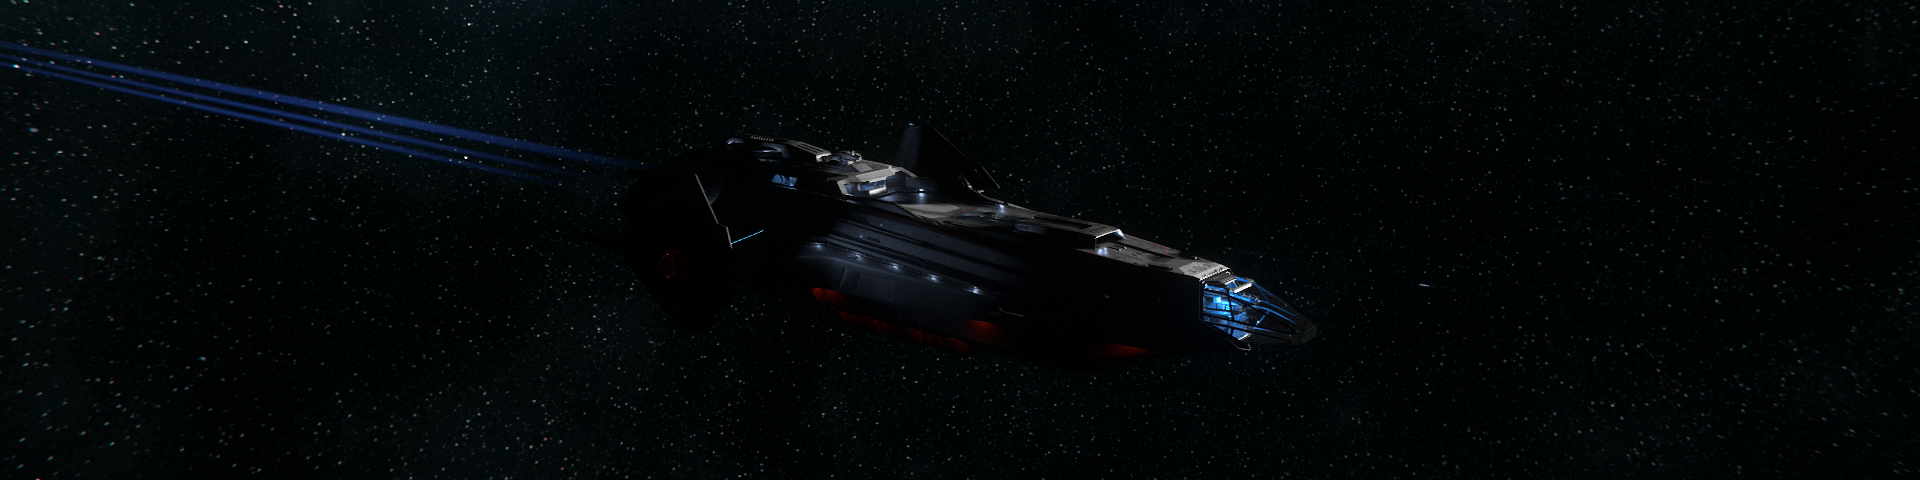 A exploration frigate cruising deeps space.